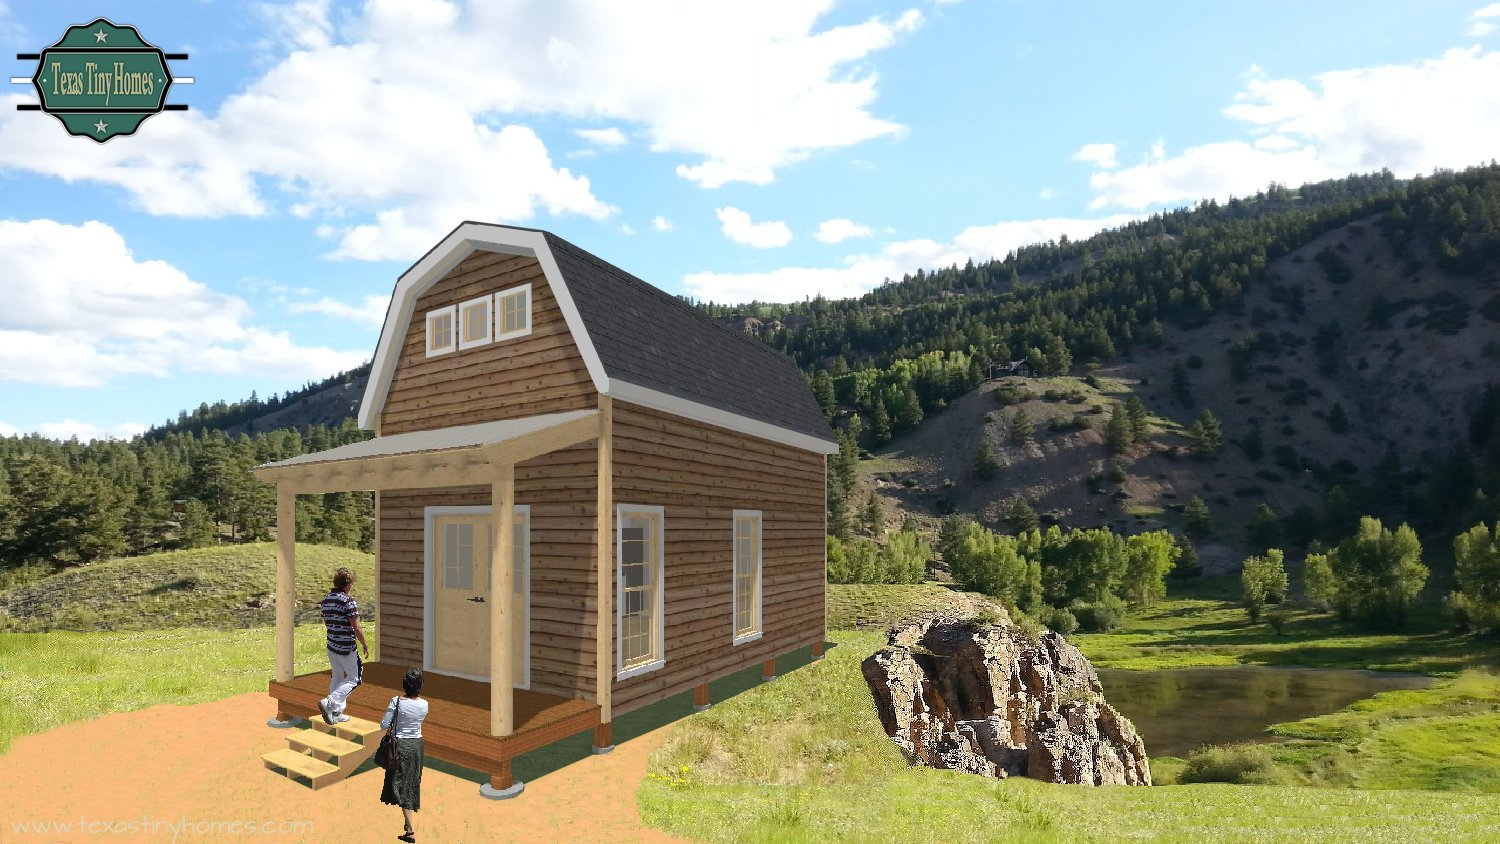 Tiny House Movement, Tiny Homes Movement, Oregon Tiny Homes, Oregon Tiny Houses, Oregon Tiny House Plans, Oregon Small Houses, Oregon Small House Plans, Oregon Tiny Home Villages